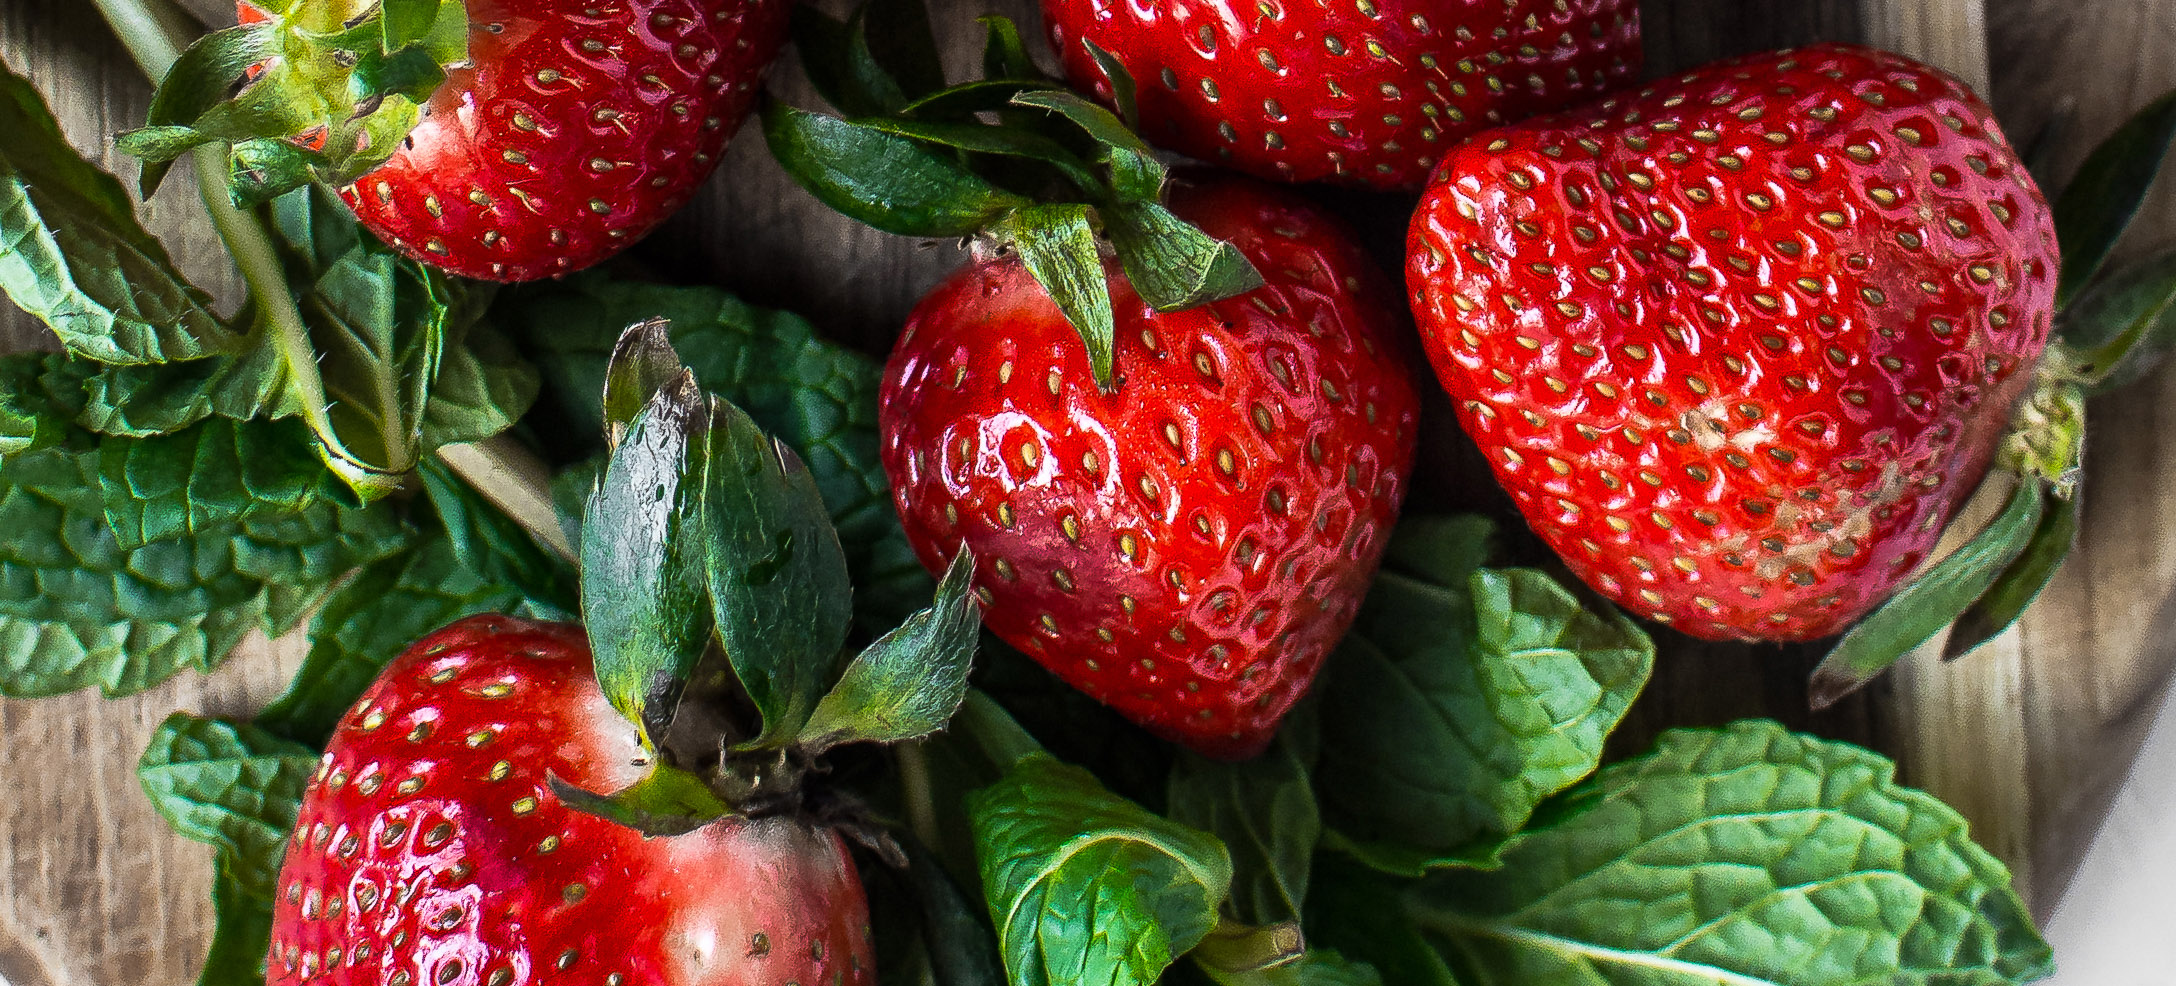 1-Strawberry Feed Strawberries (1 of 1)